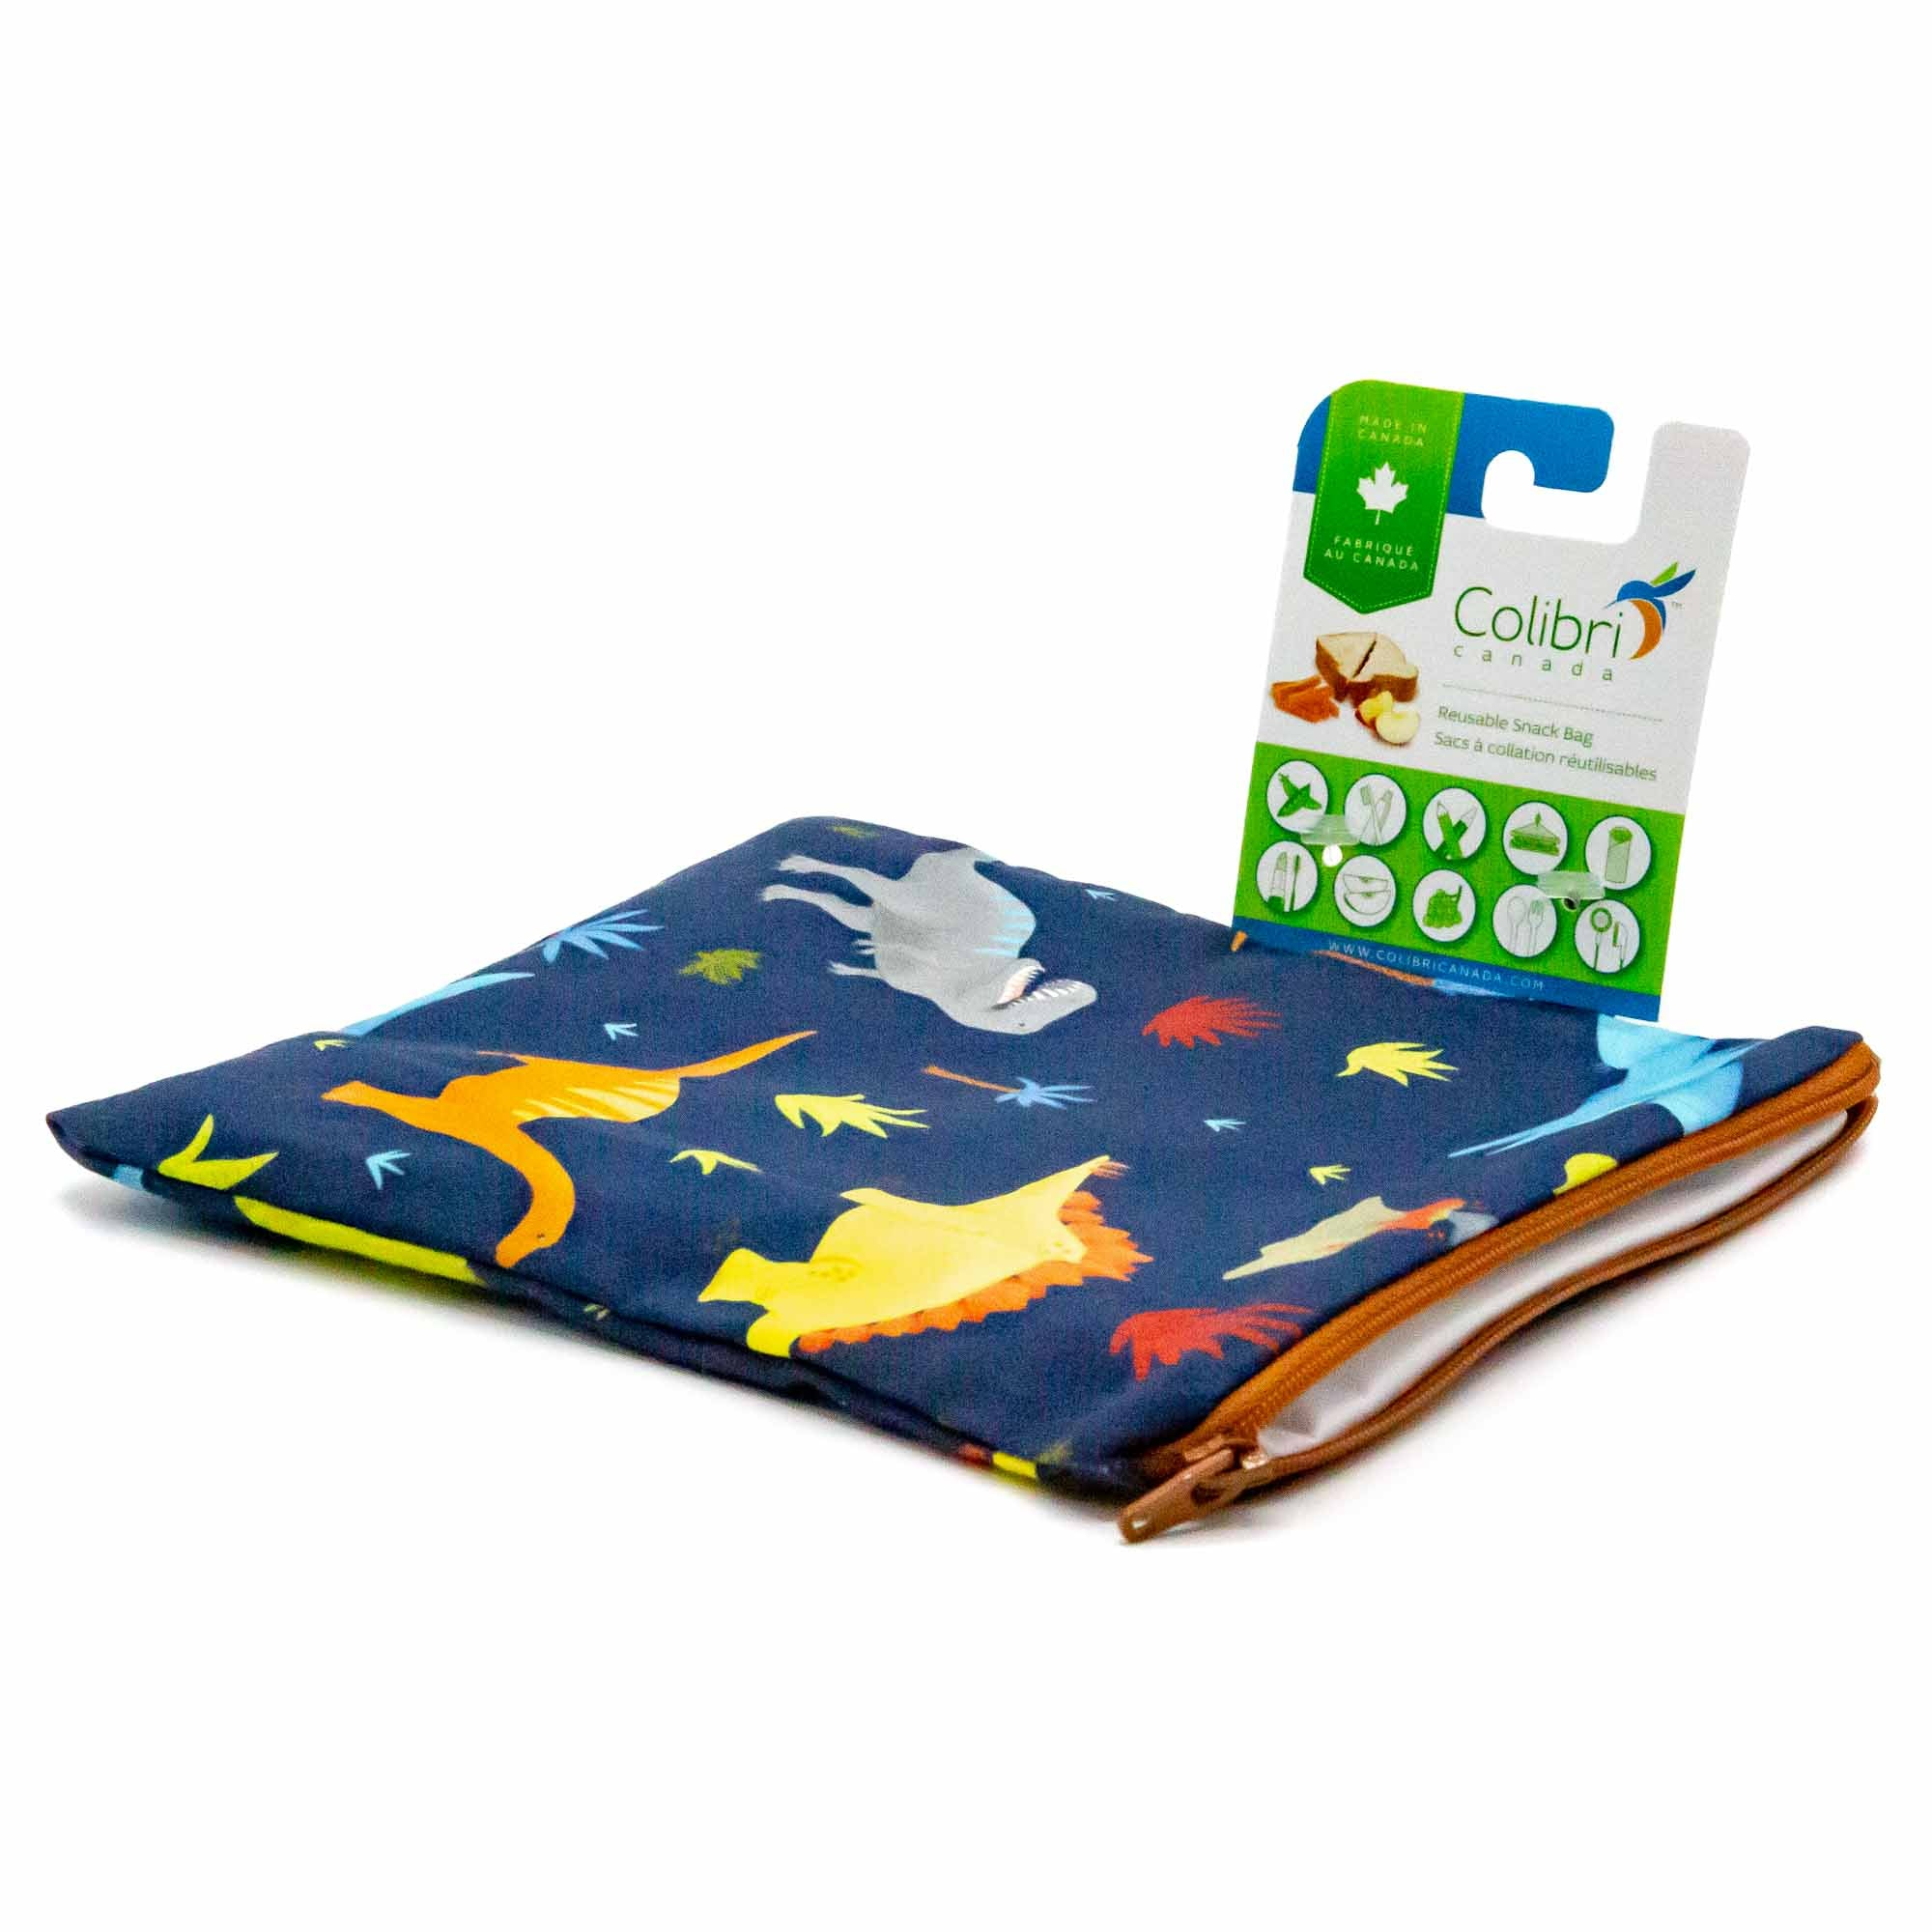 Colibri Dinosaurs Snack Bag - Mortise And Tenon